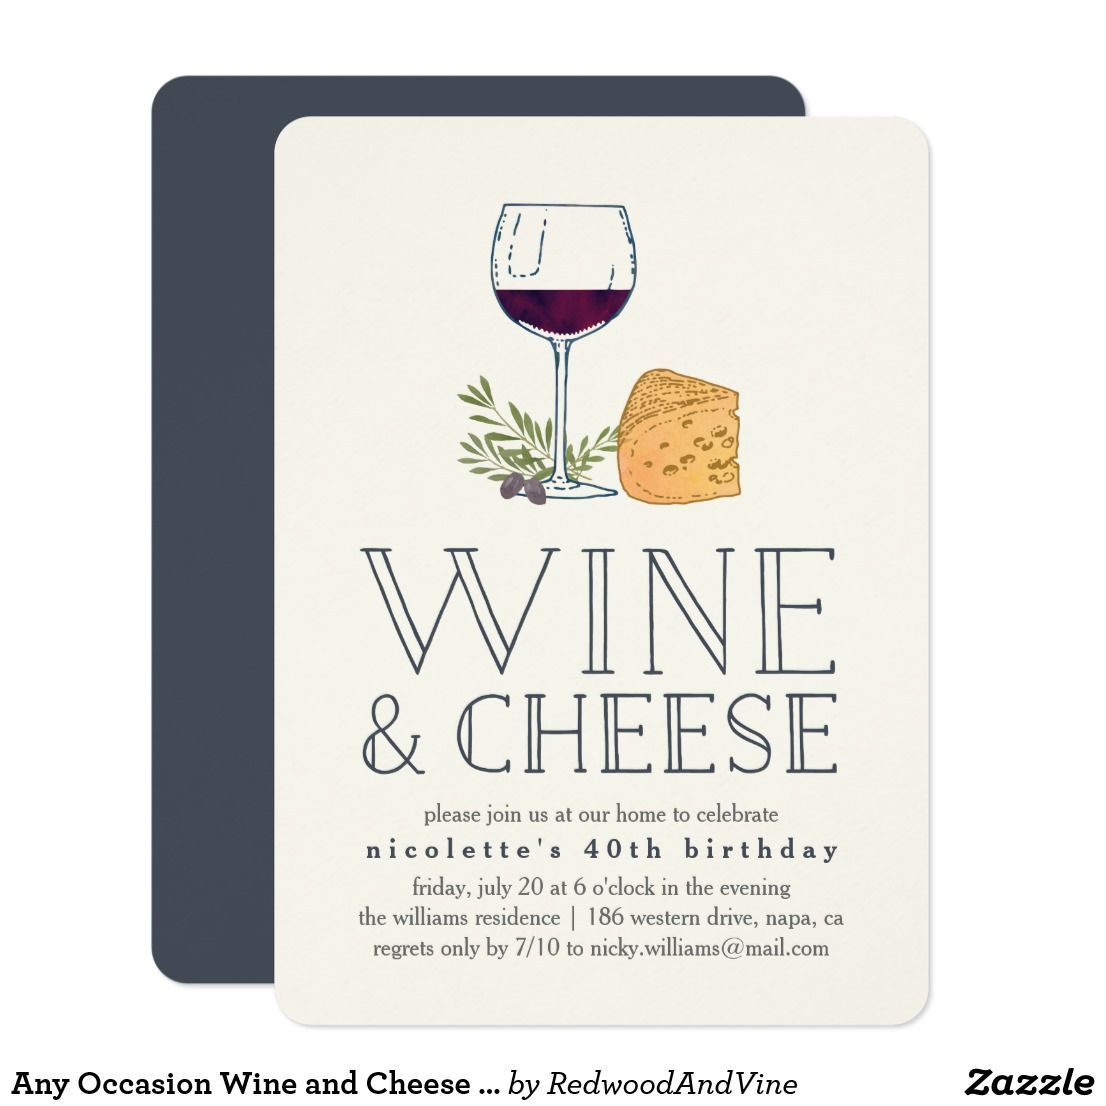 Any Occasion Wine and Cheese Party Invitation | Invitations ...